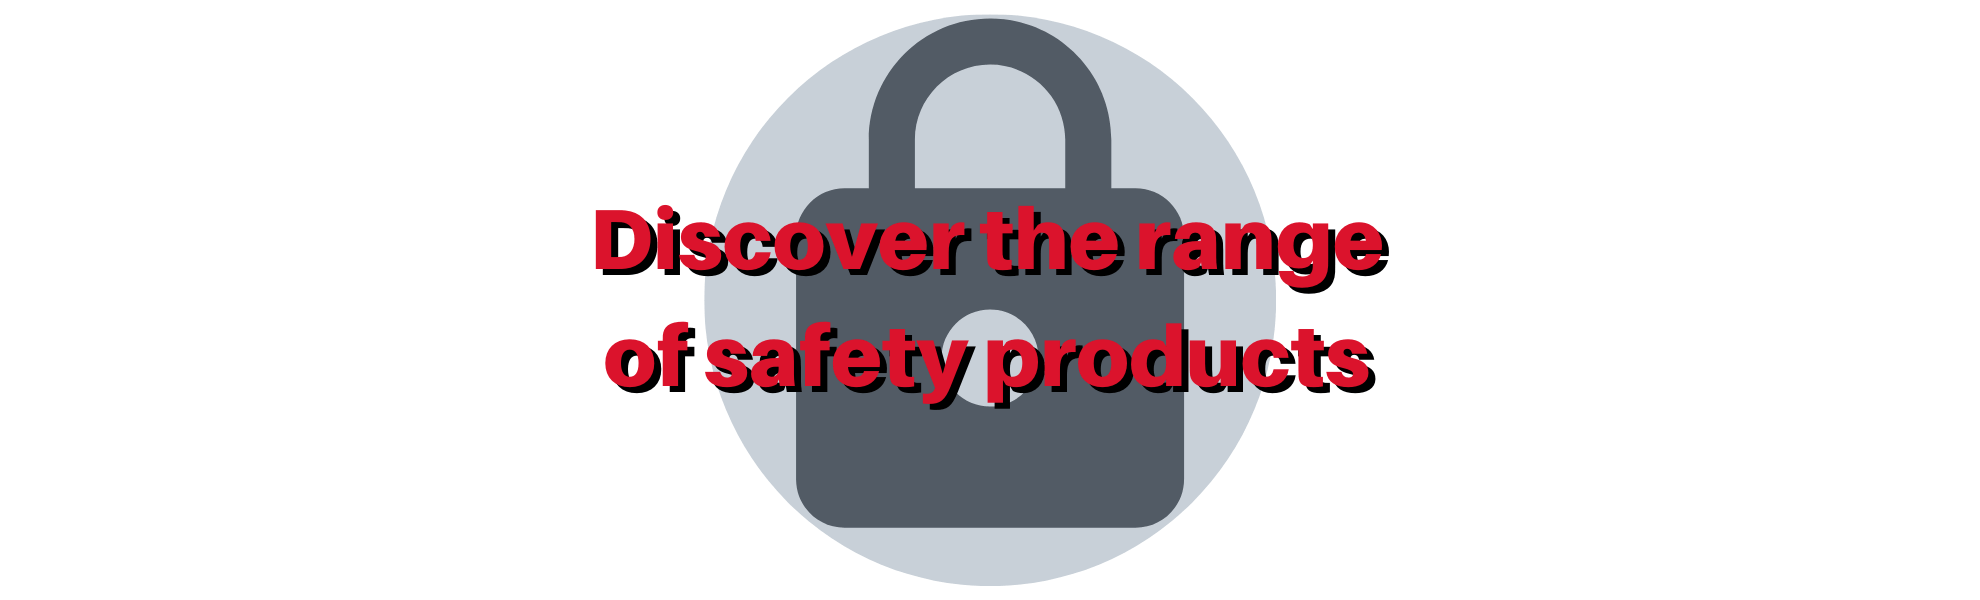 banner_safety_products